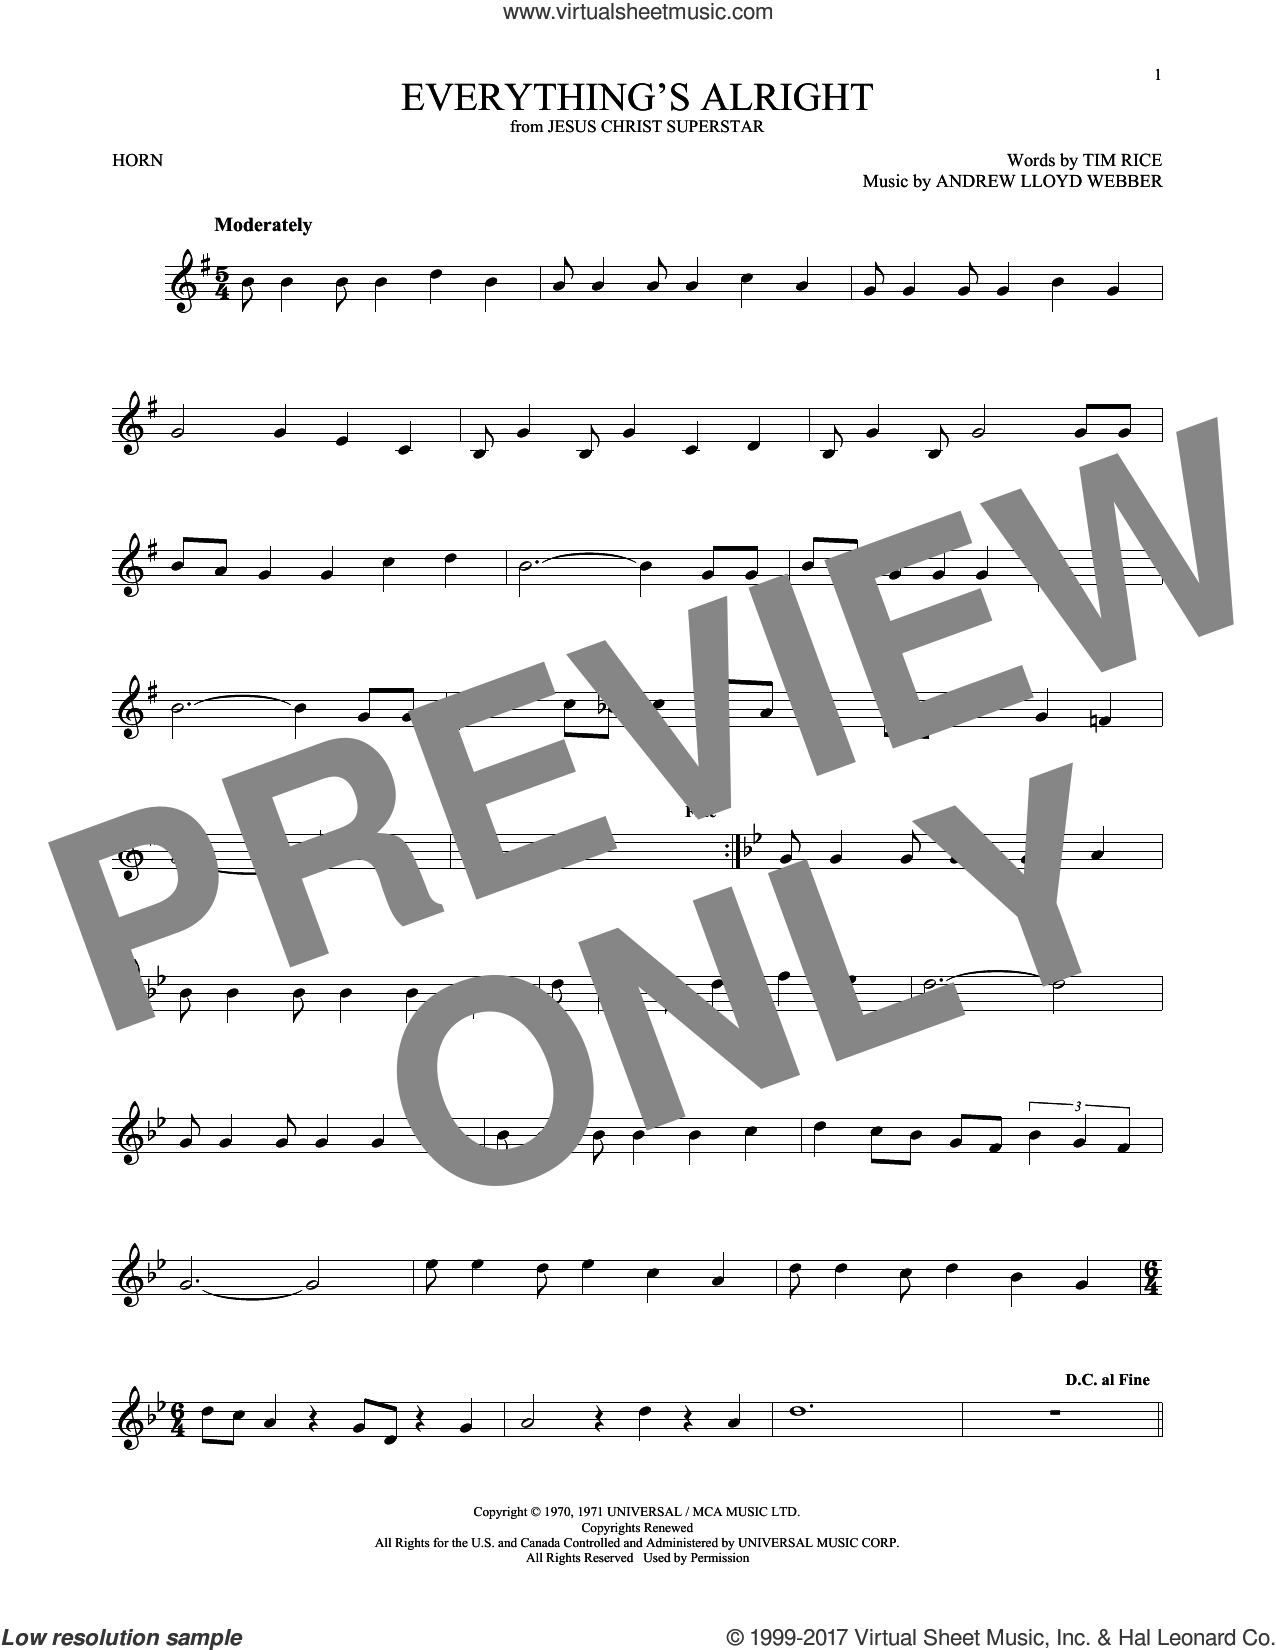 Everything's Alright sheet music for horn solo by Andrew Lloyd Webber, Yvonne Elliman and Tim Rice, intermediate skill level